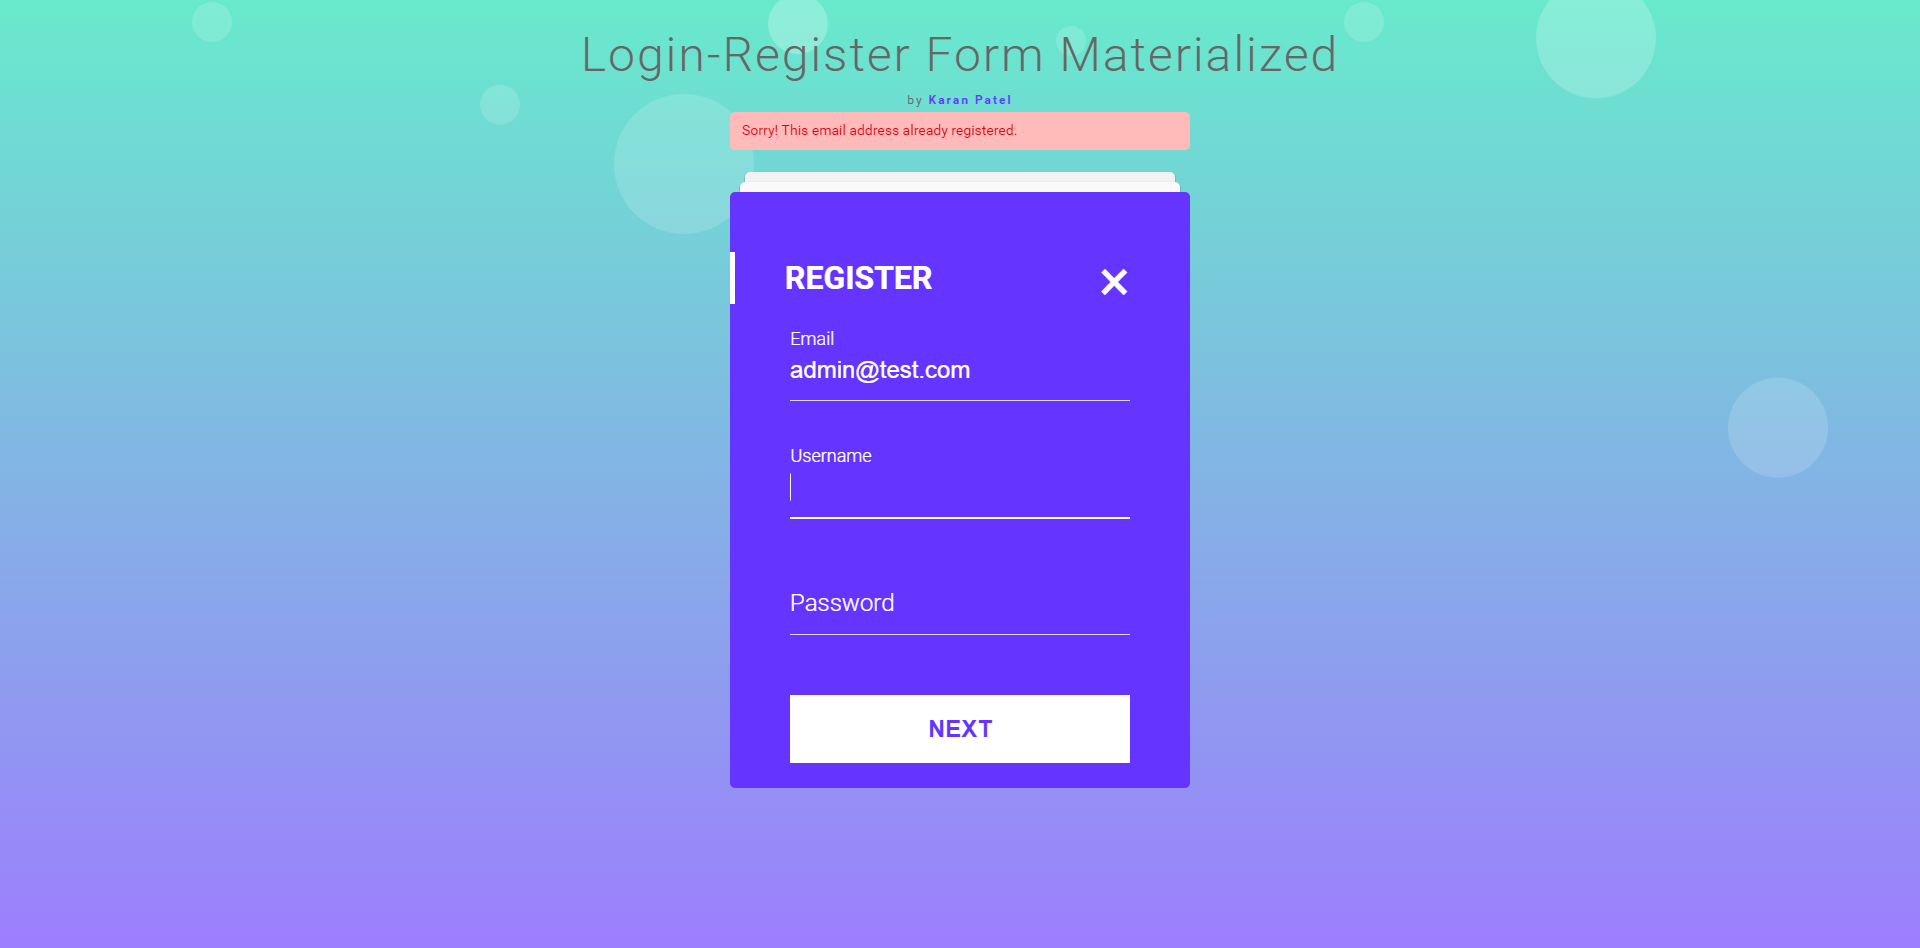 Login registration form in mvc materialize design by previewimagesalreadyregisteredg falaconquin